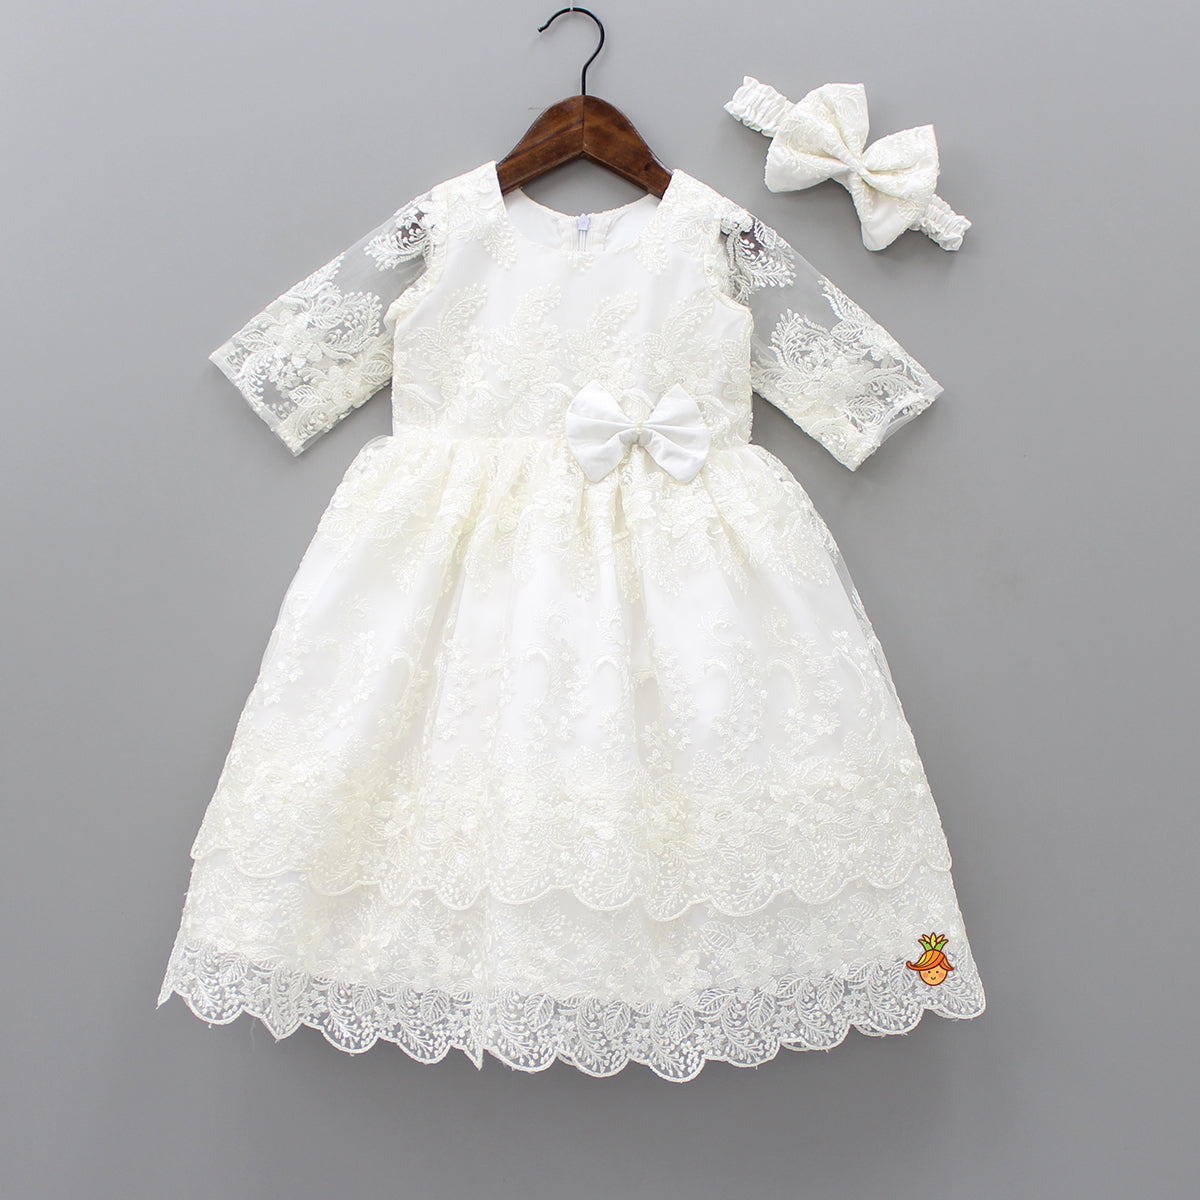 Pre Order: White Embroidered Gown With Headband